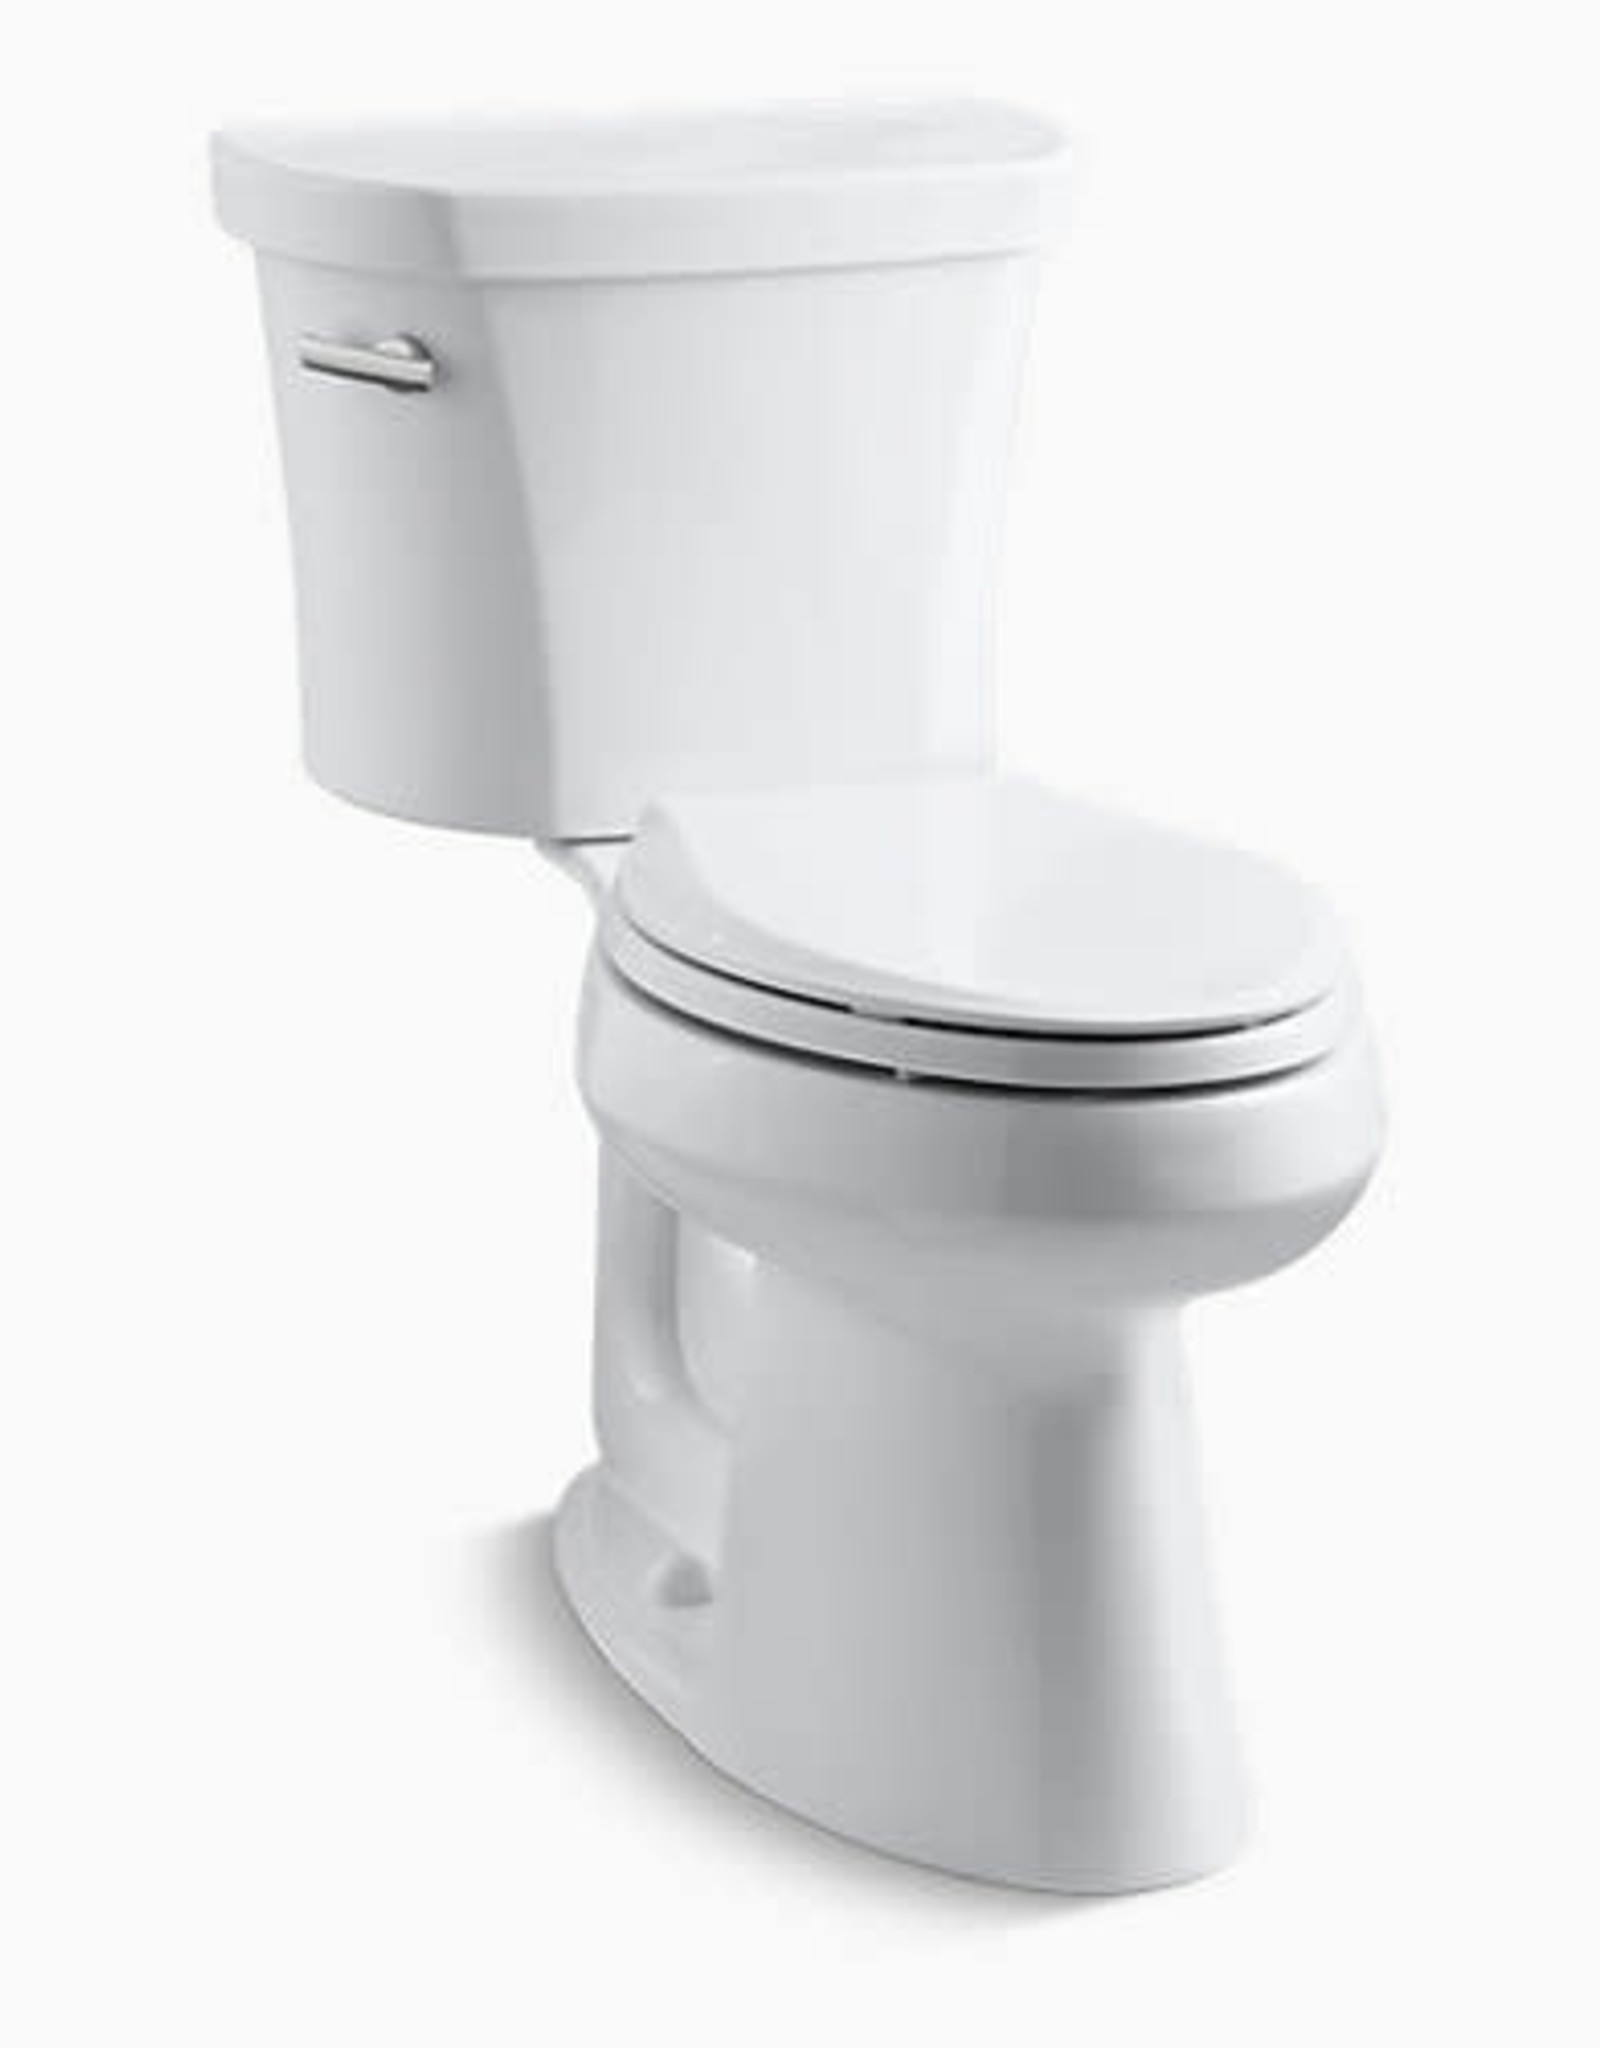 Kohler Kohler Wellworth Highline Comfort Height Elongated Toilet- White